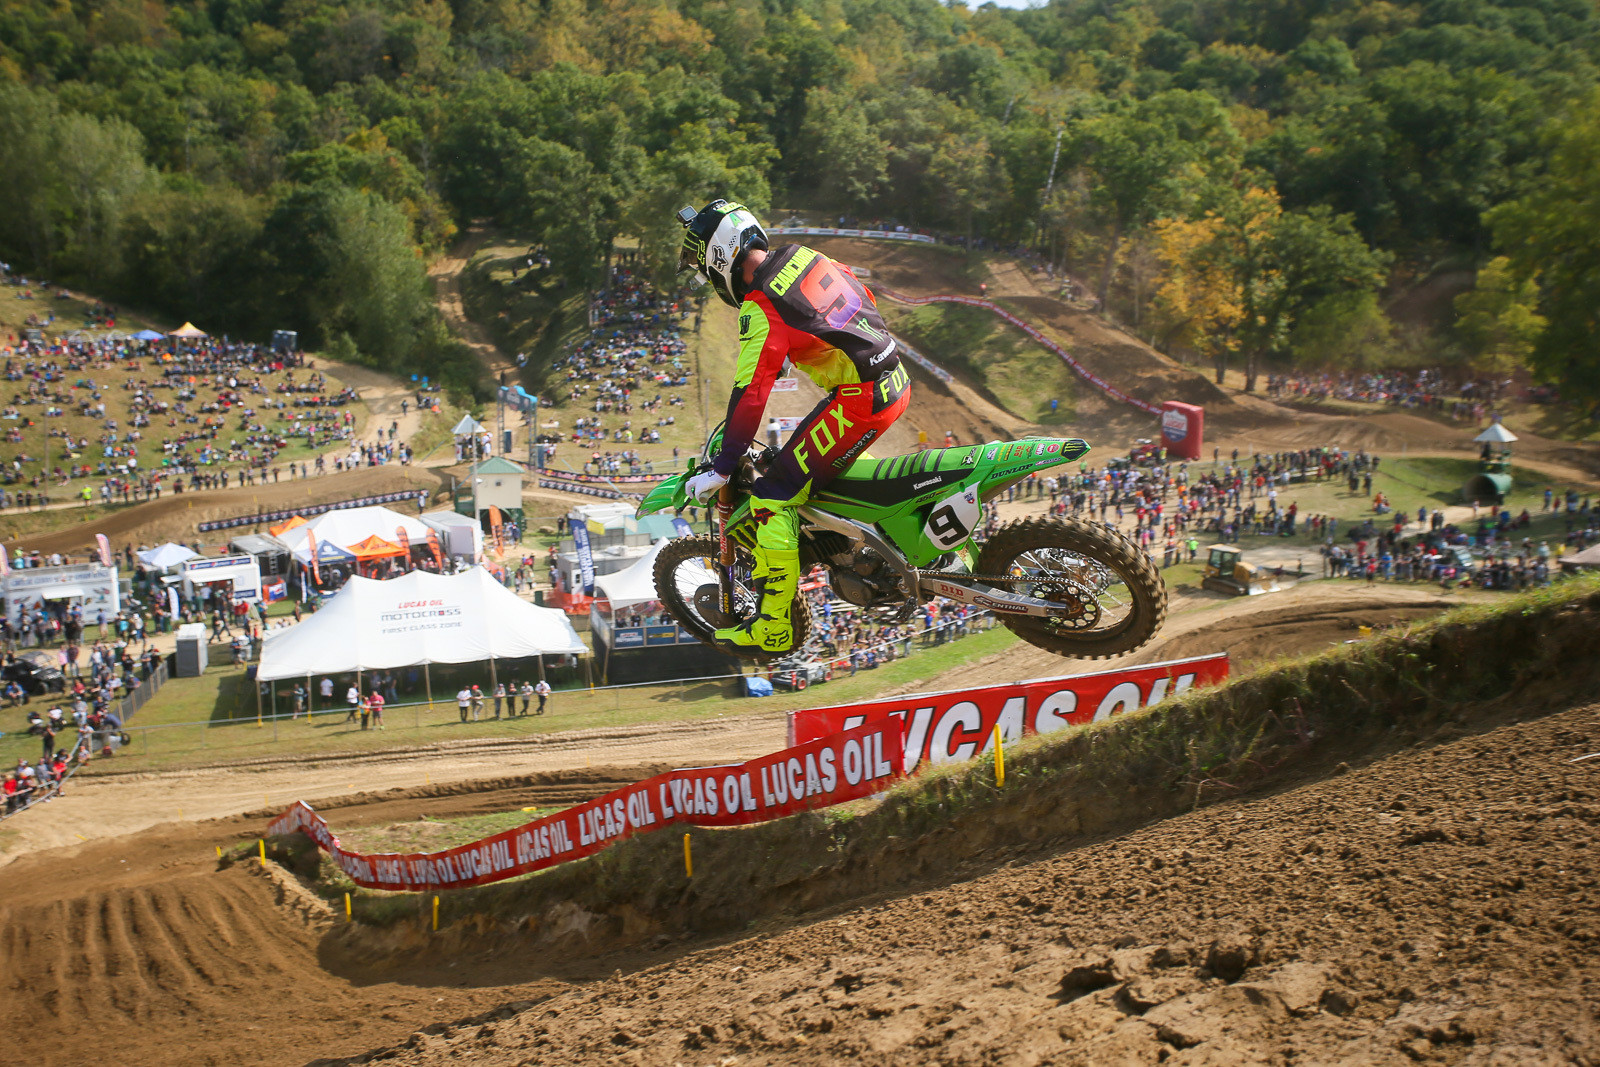 """Spectator capacity varied at different rounds of the Lucas Oil Pro Motocross Championship, with Spring Creek, Thunder Valley, and Fox Raceway feeling the most """"normal."""""""